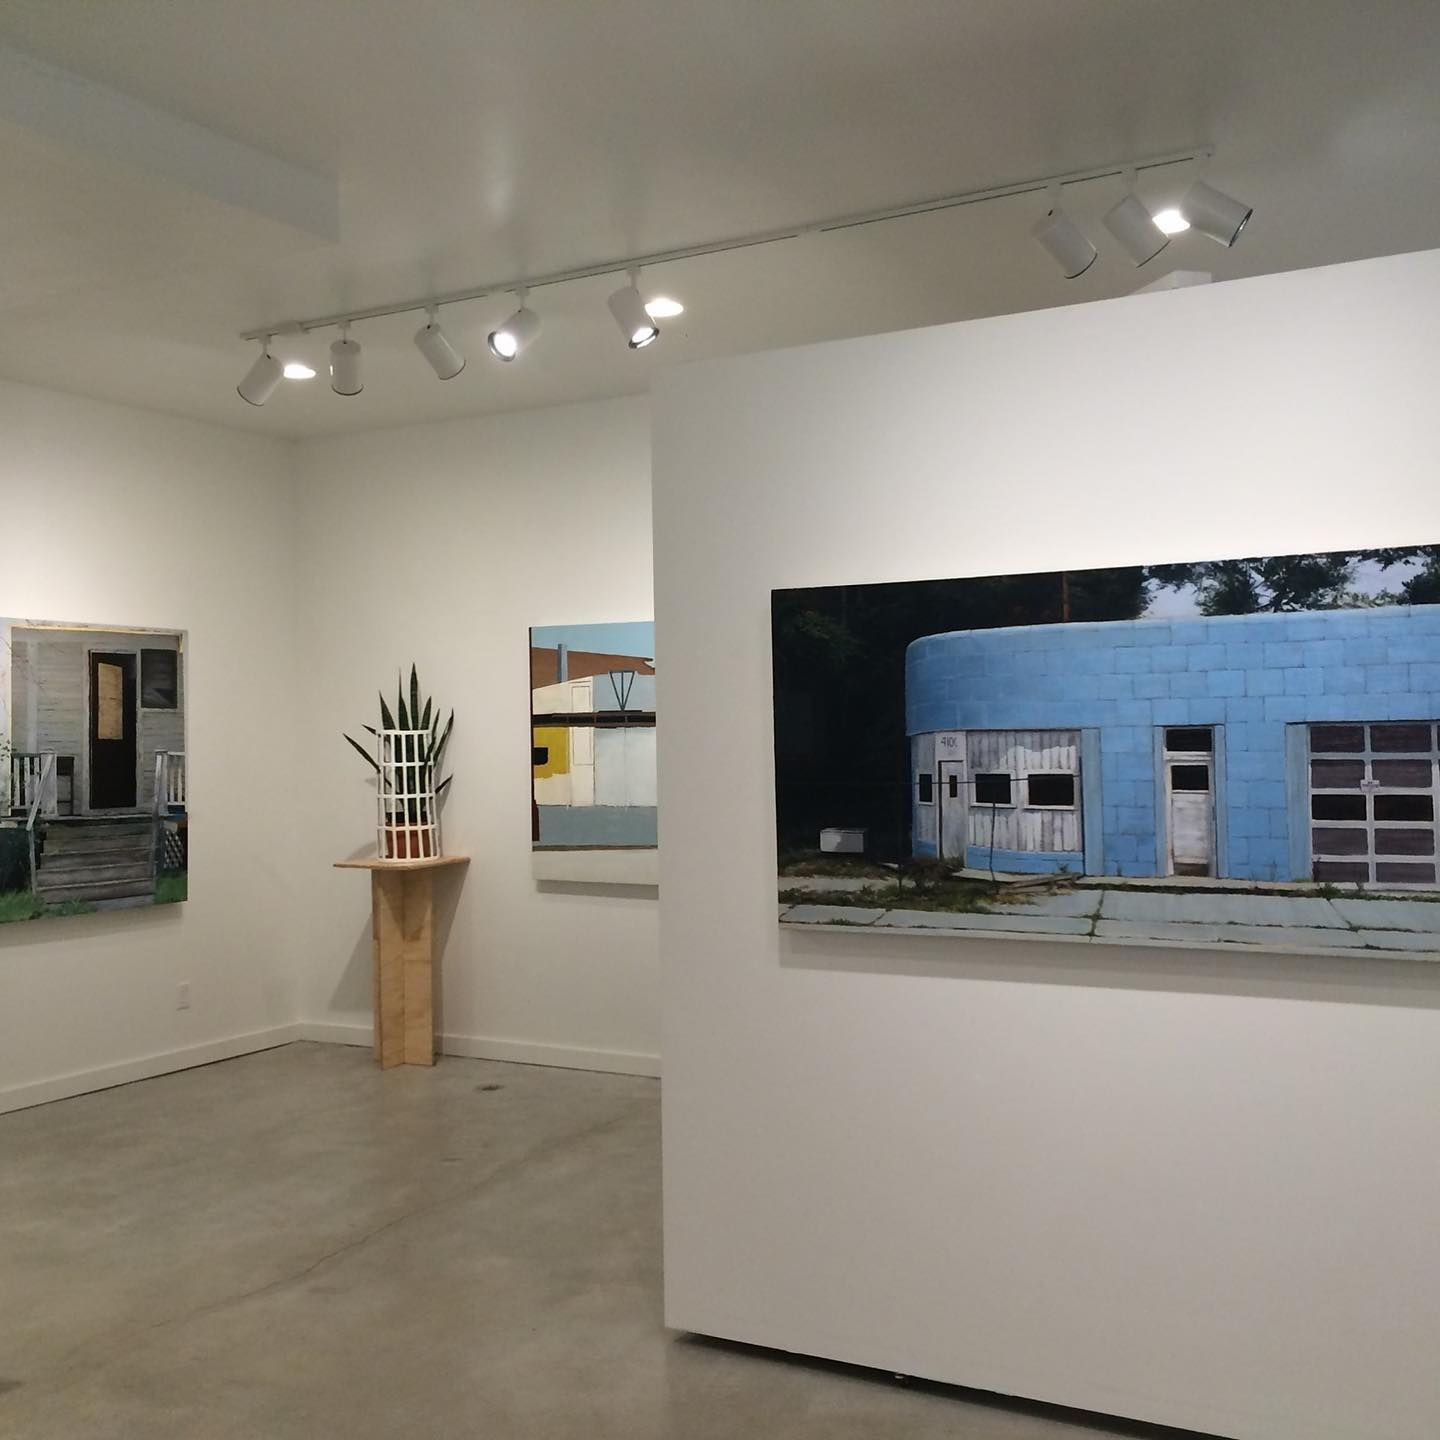 For Rent Storefront 700 Heat Water Sewer Included Perfect Gallery Space Or Retail Space High Ceilings Led Lighting Studio Space Living Spaces Home Decor